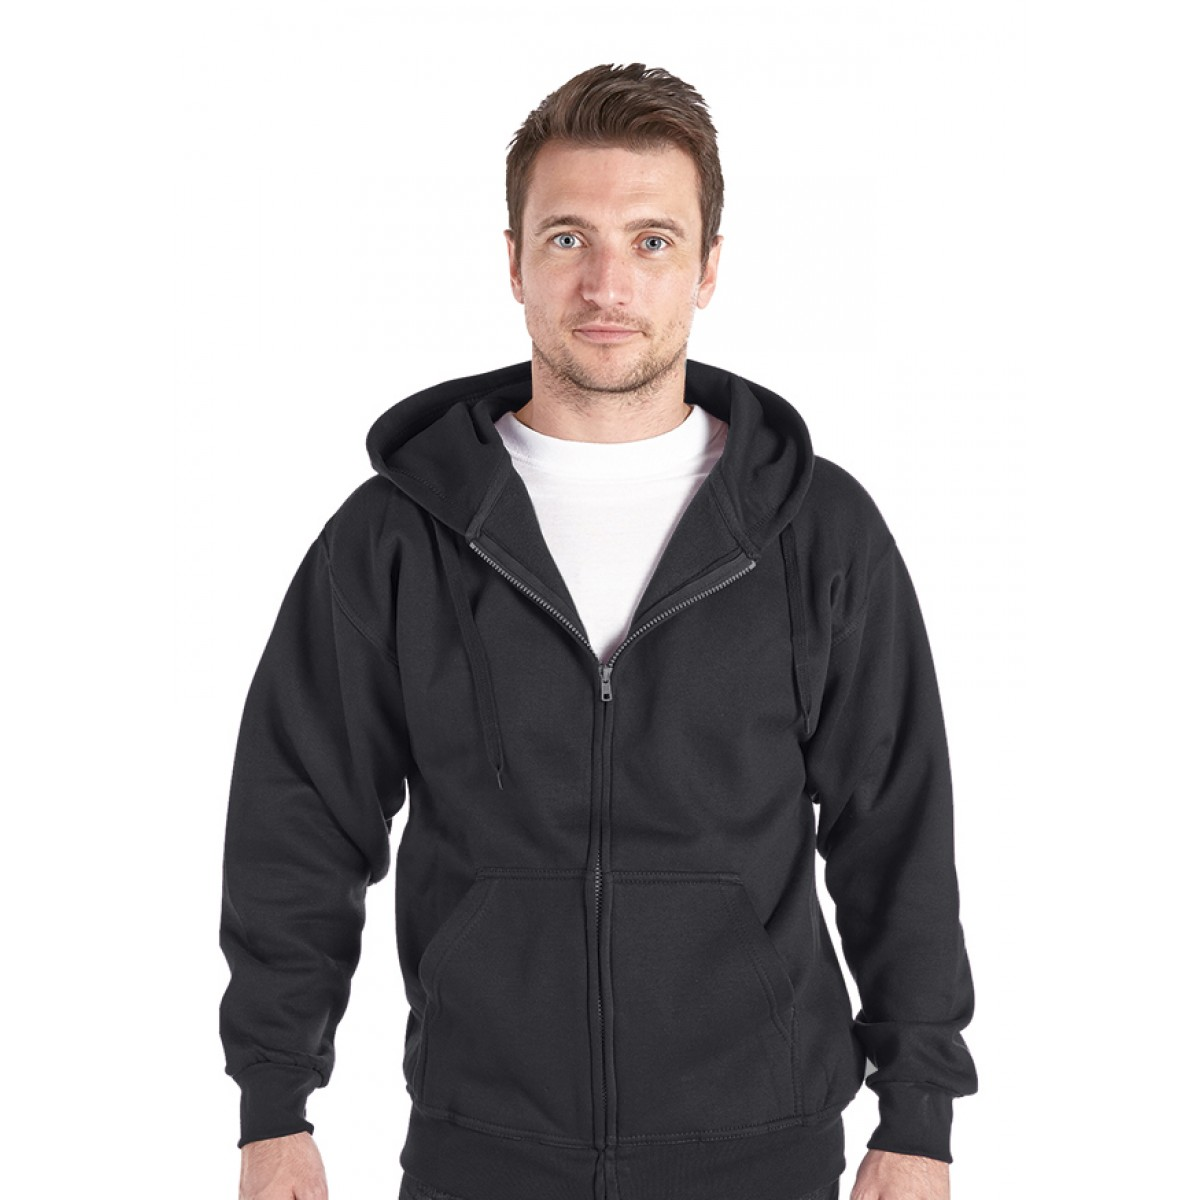 Ranks RK27 Hooded Full Zip Sweatshirt